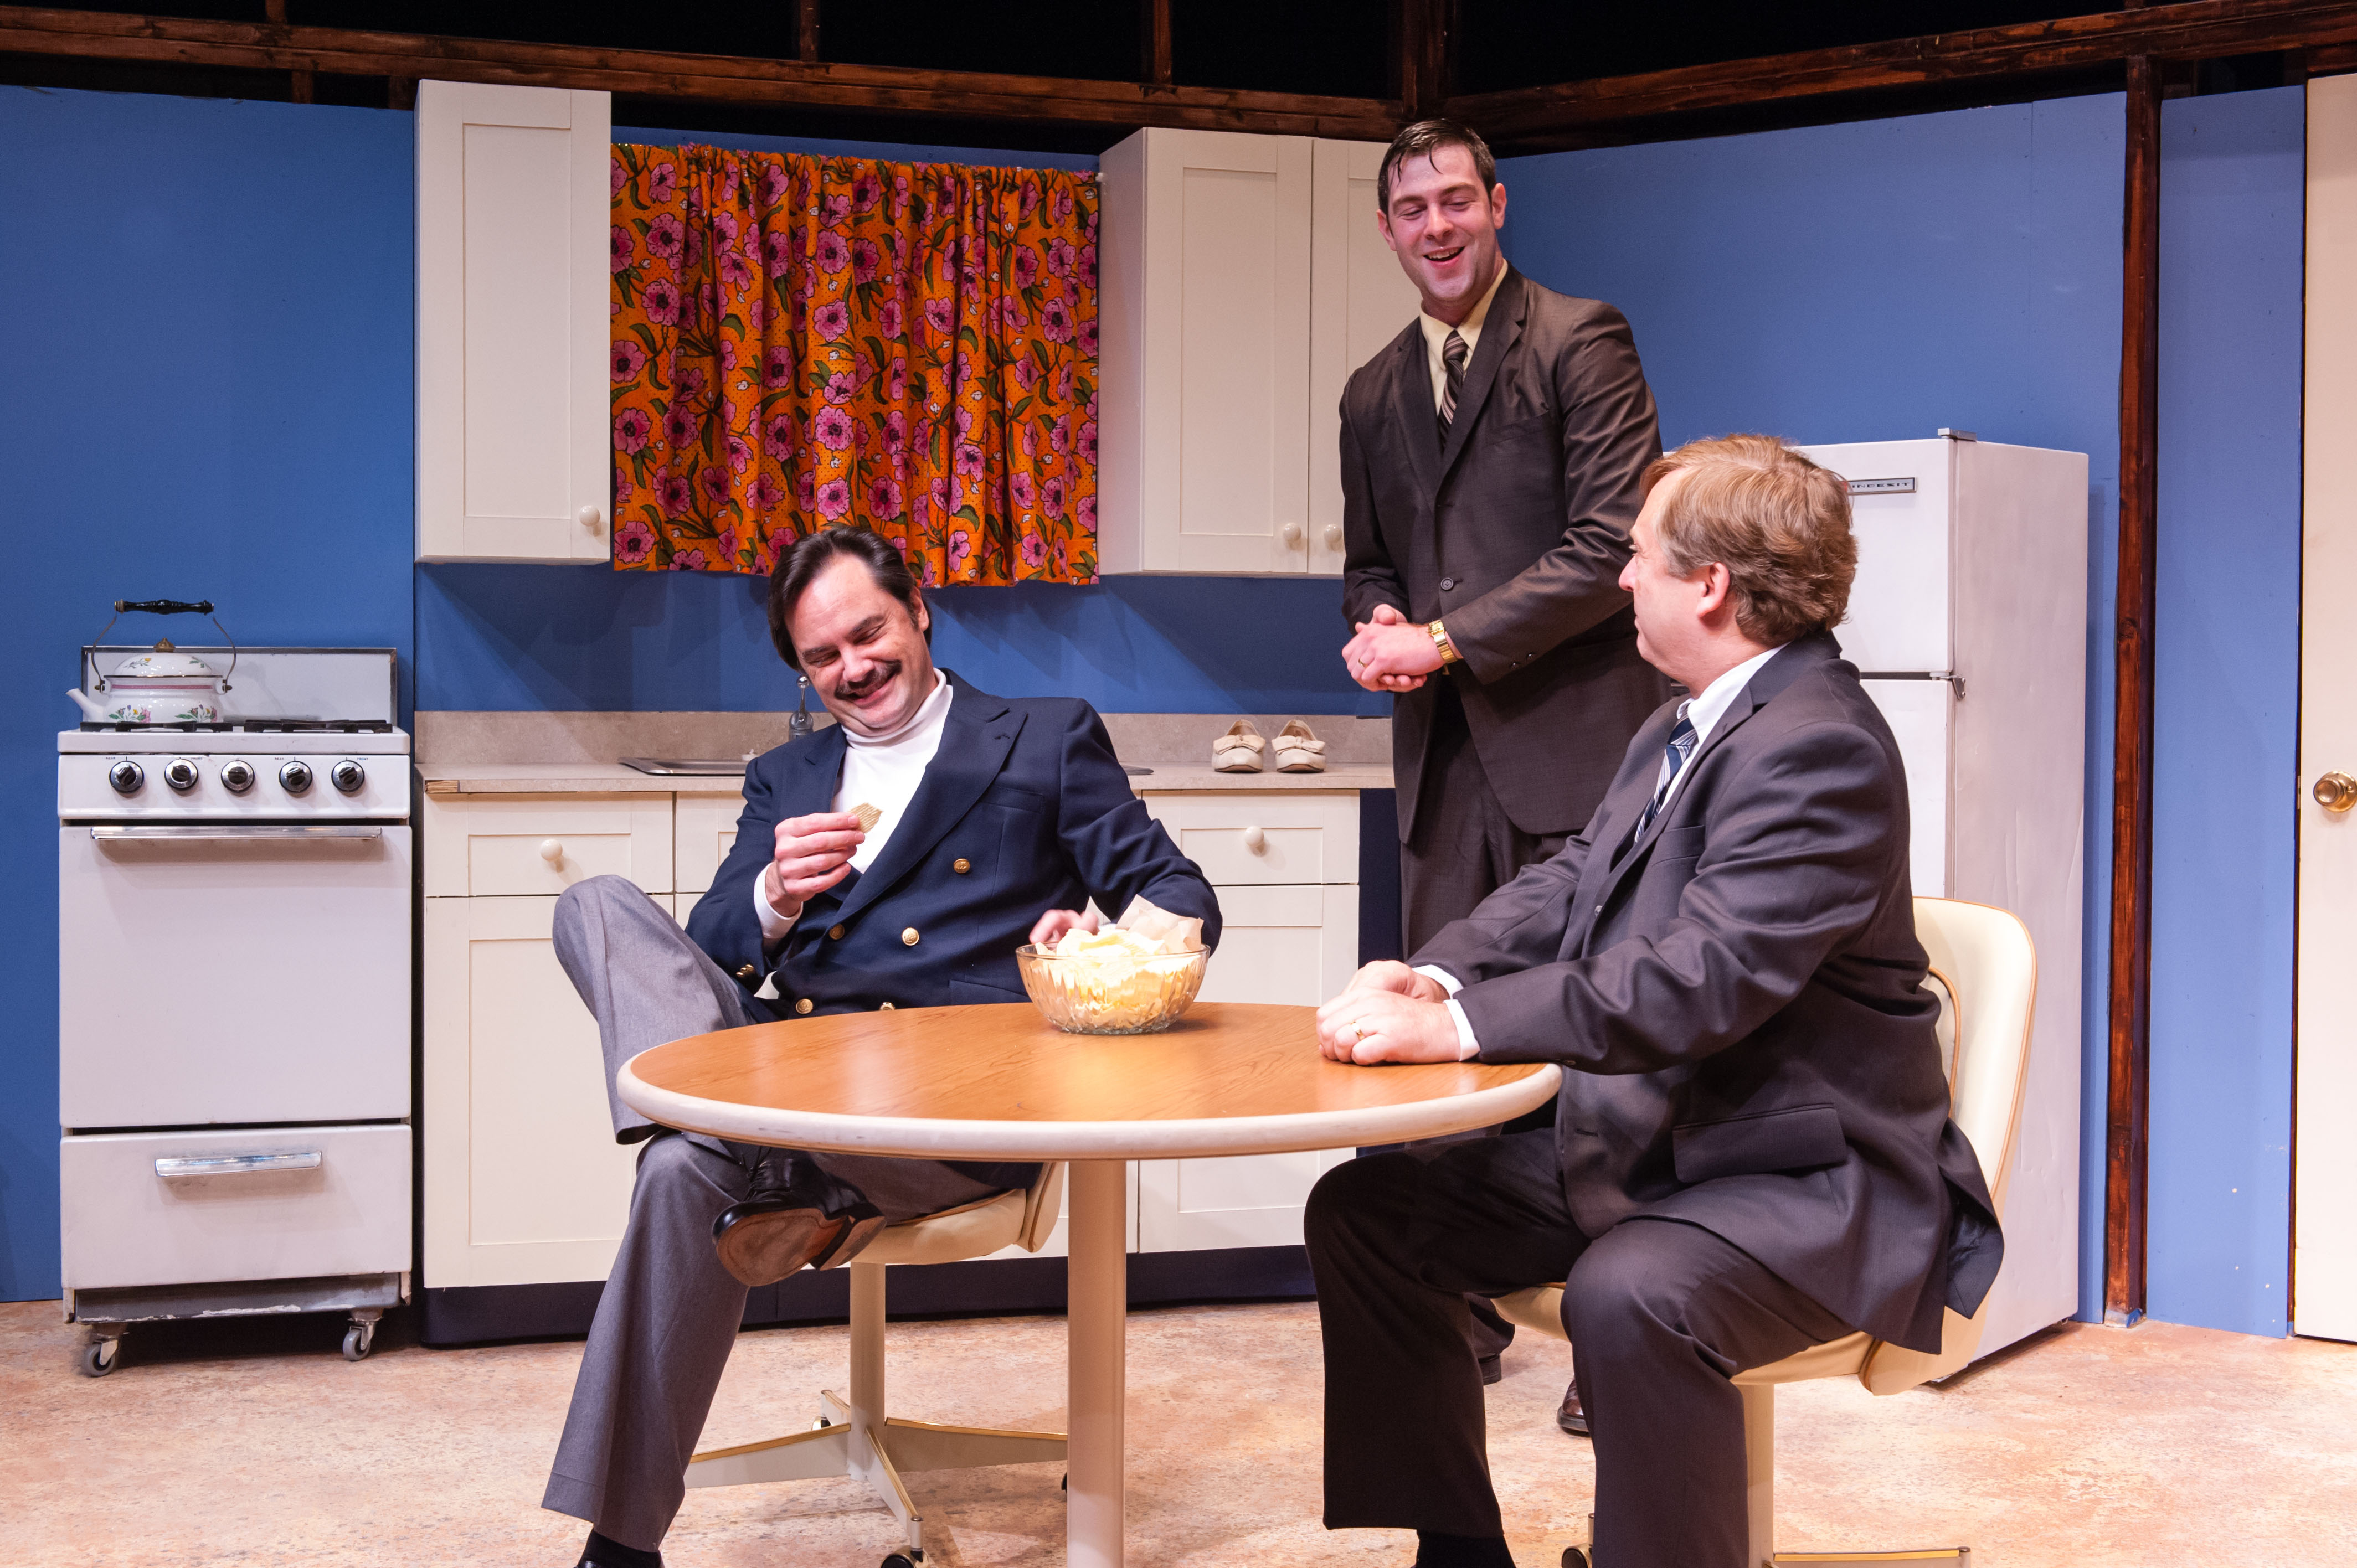 Bill Mootos, David Berger-Jones, and Steven Barkhimer in Alan Ayckbourn's ABSURD PERSON SINGULAR. Produced by The Nora Theatre Company. Photo: A.R. Sinclair Photography.